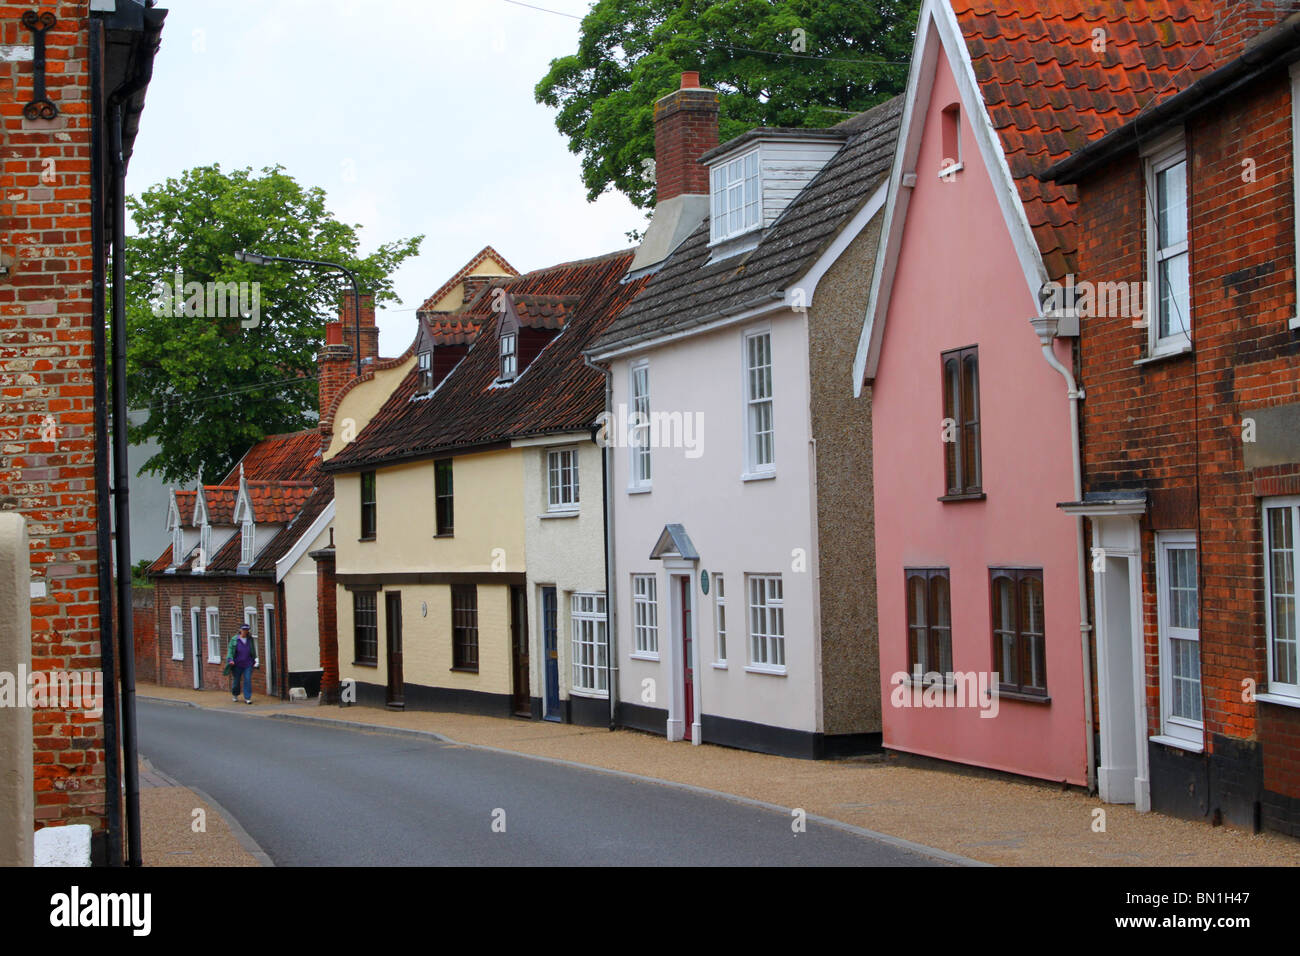 Row of old cottages typical of small  towns  and villages in England.  These picturesque homes are situated in Beccles, - Stock Image